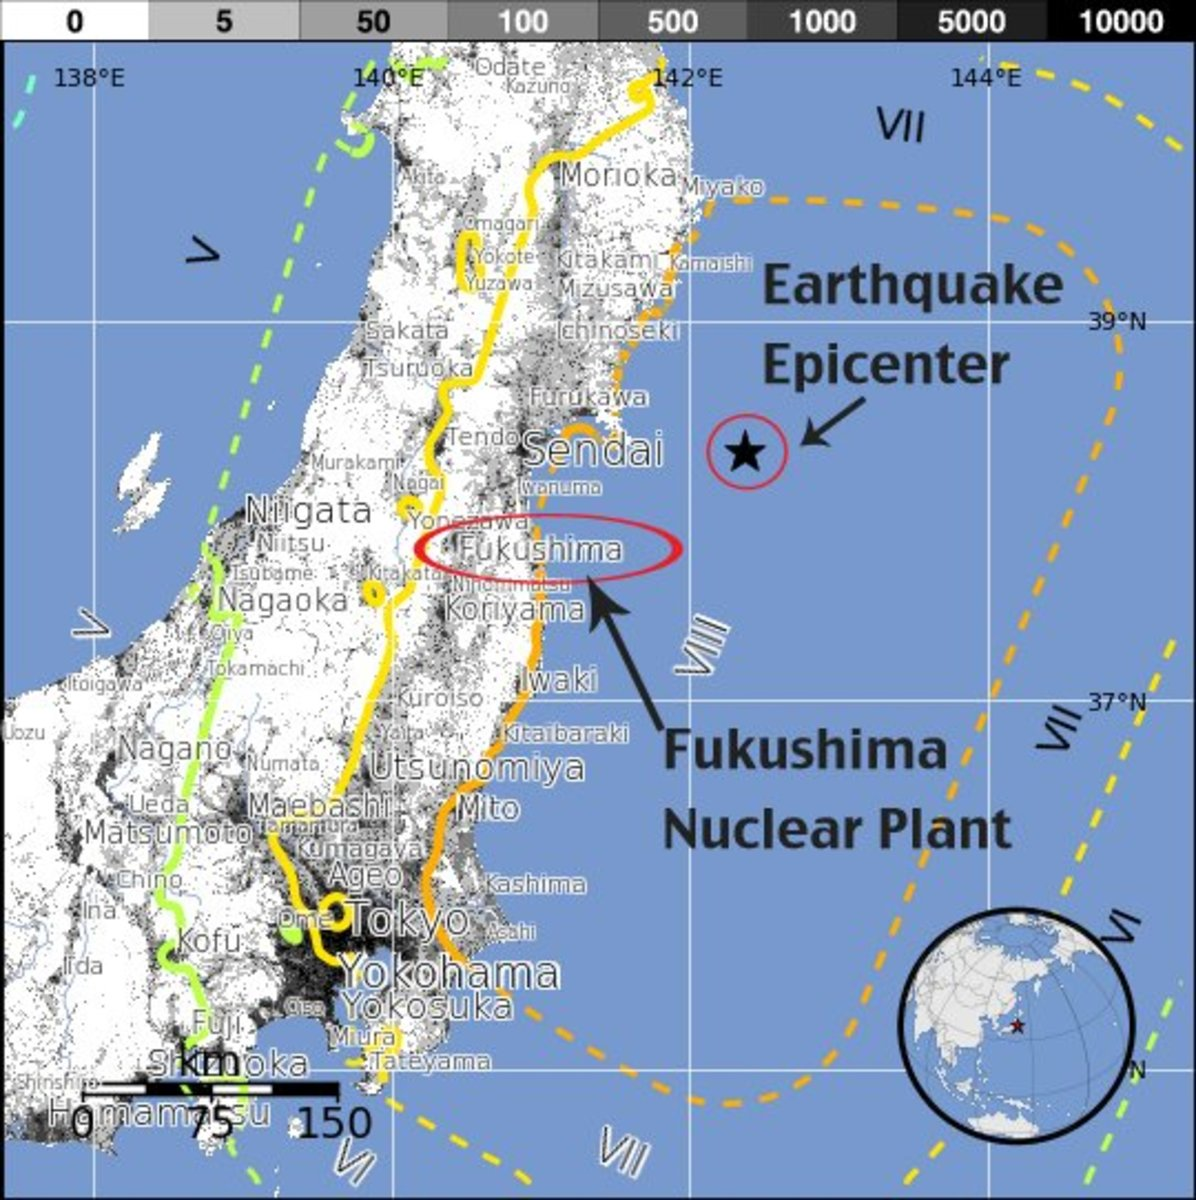 The Political Implications of the Fukushima Nuclear Accident